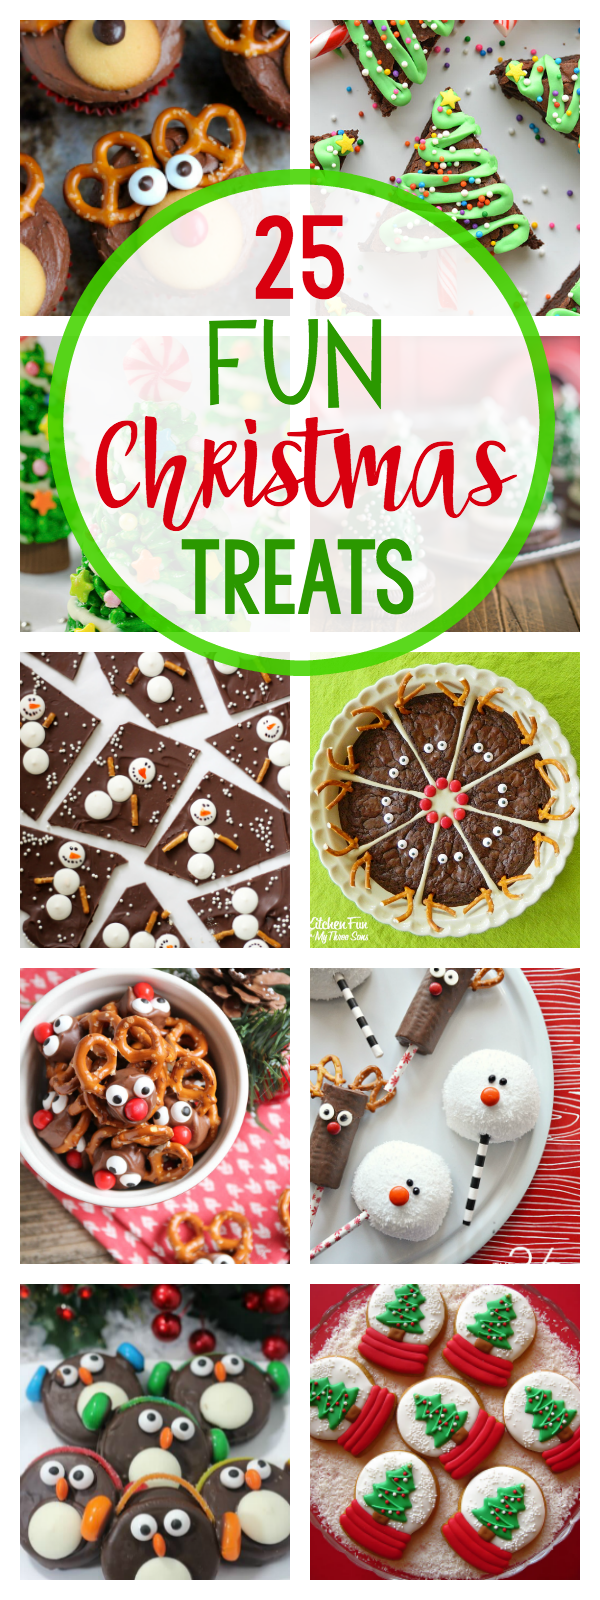 25 Fun Christmas Treat Ideas